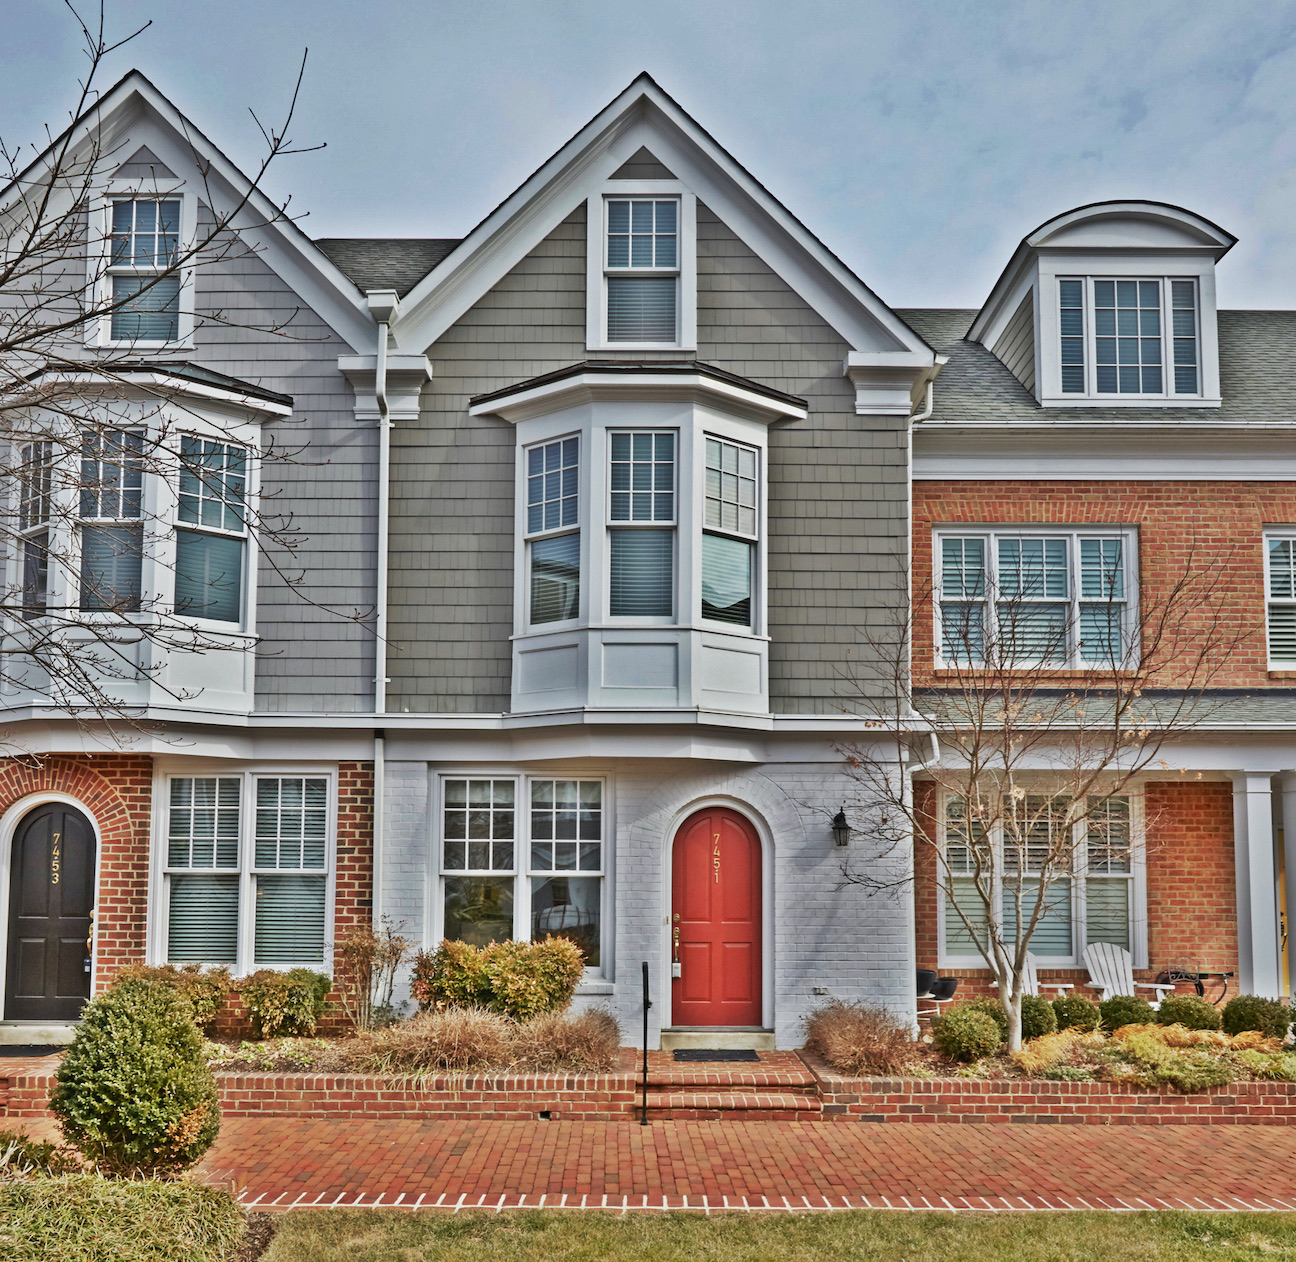 7451 Arlington Road - Villages of Bethesda Townhome Exterior